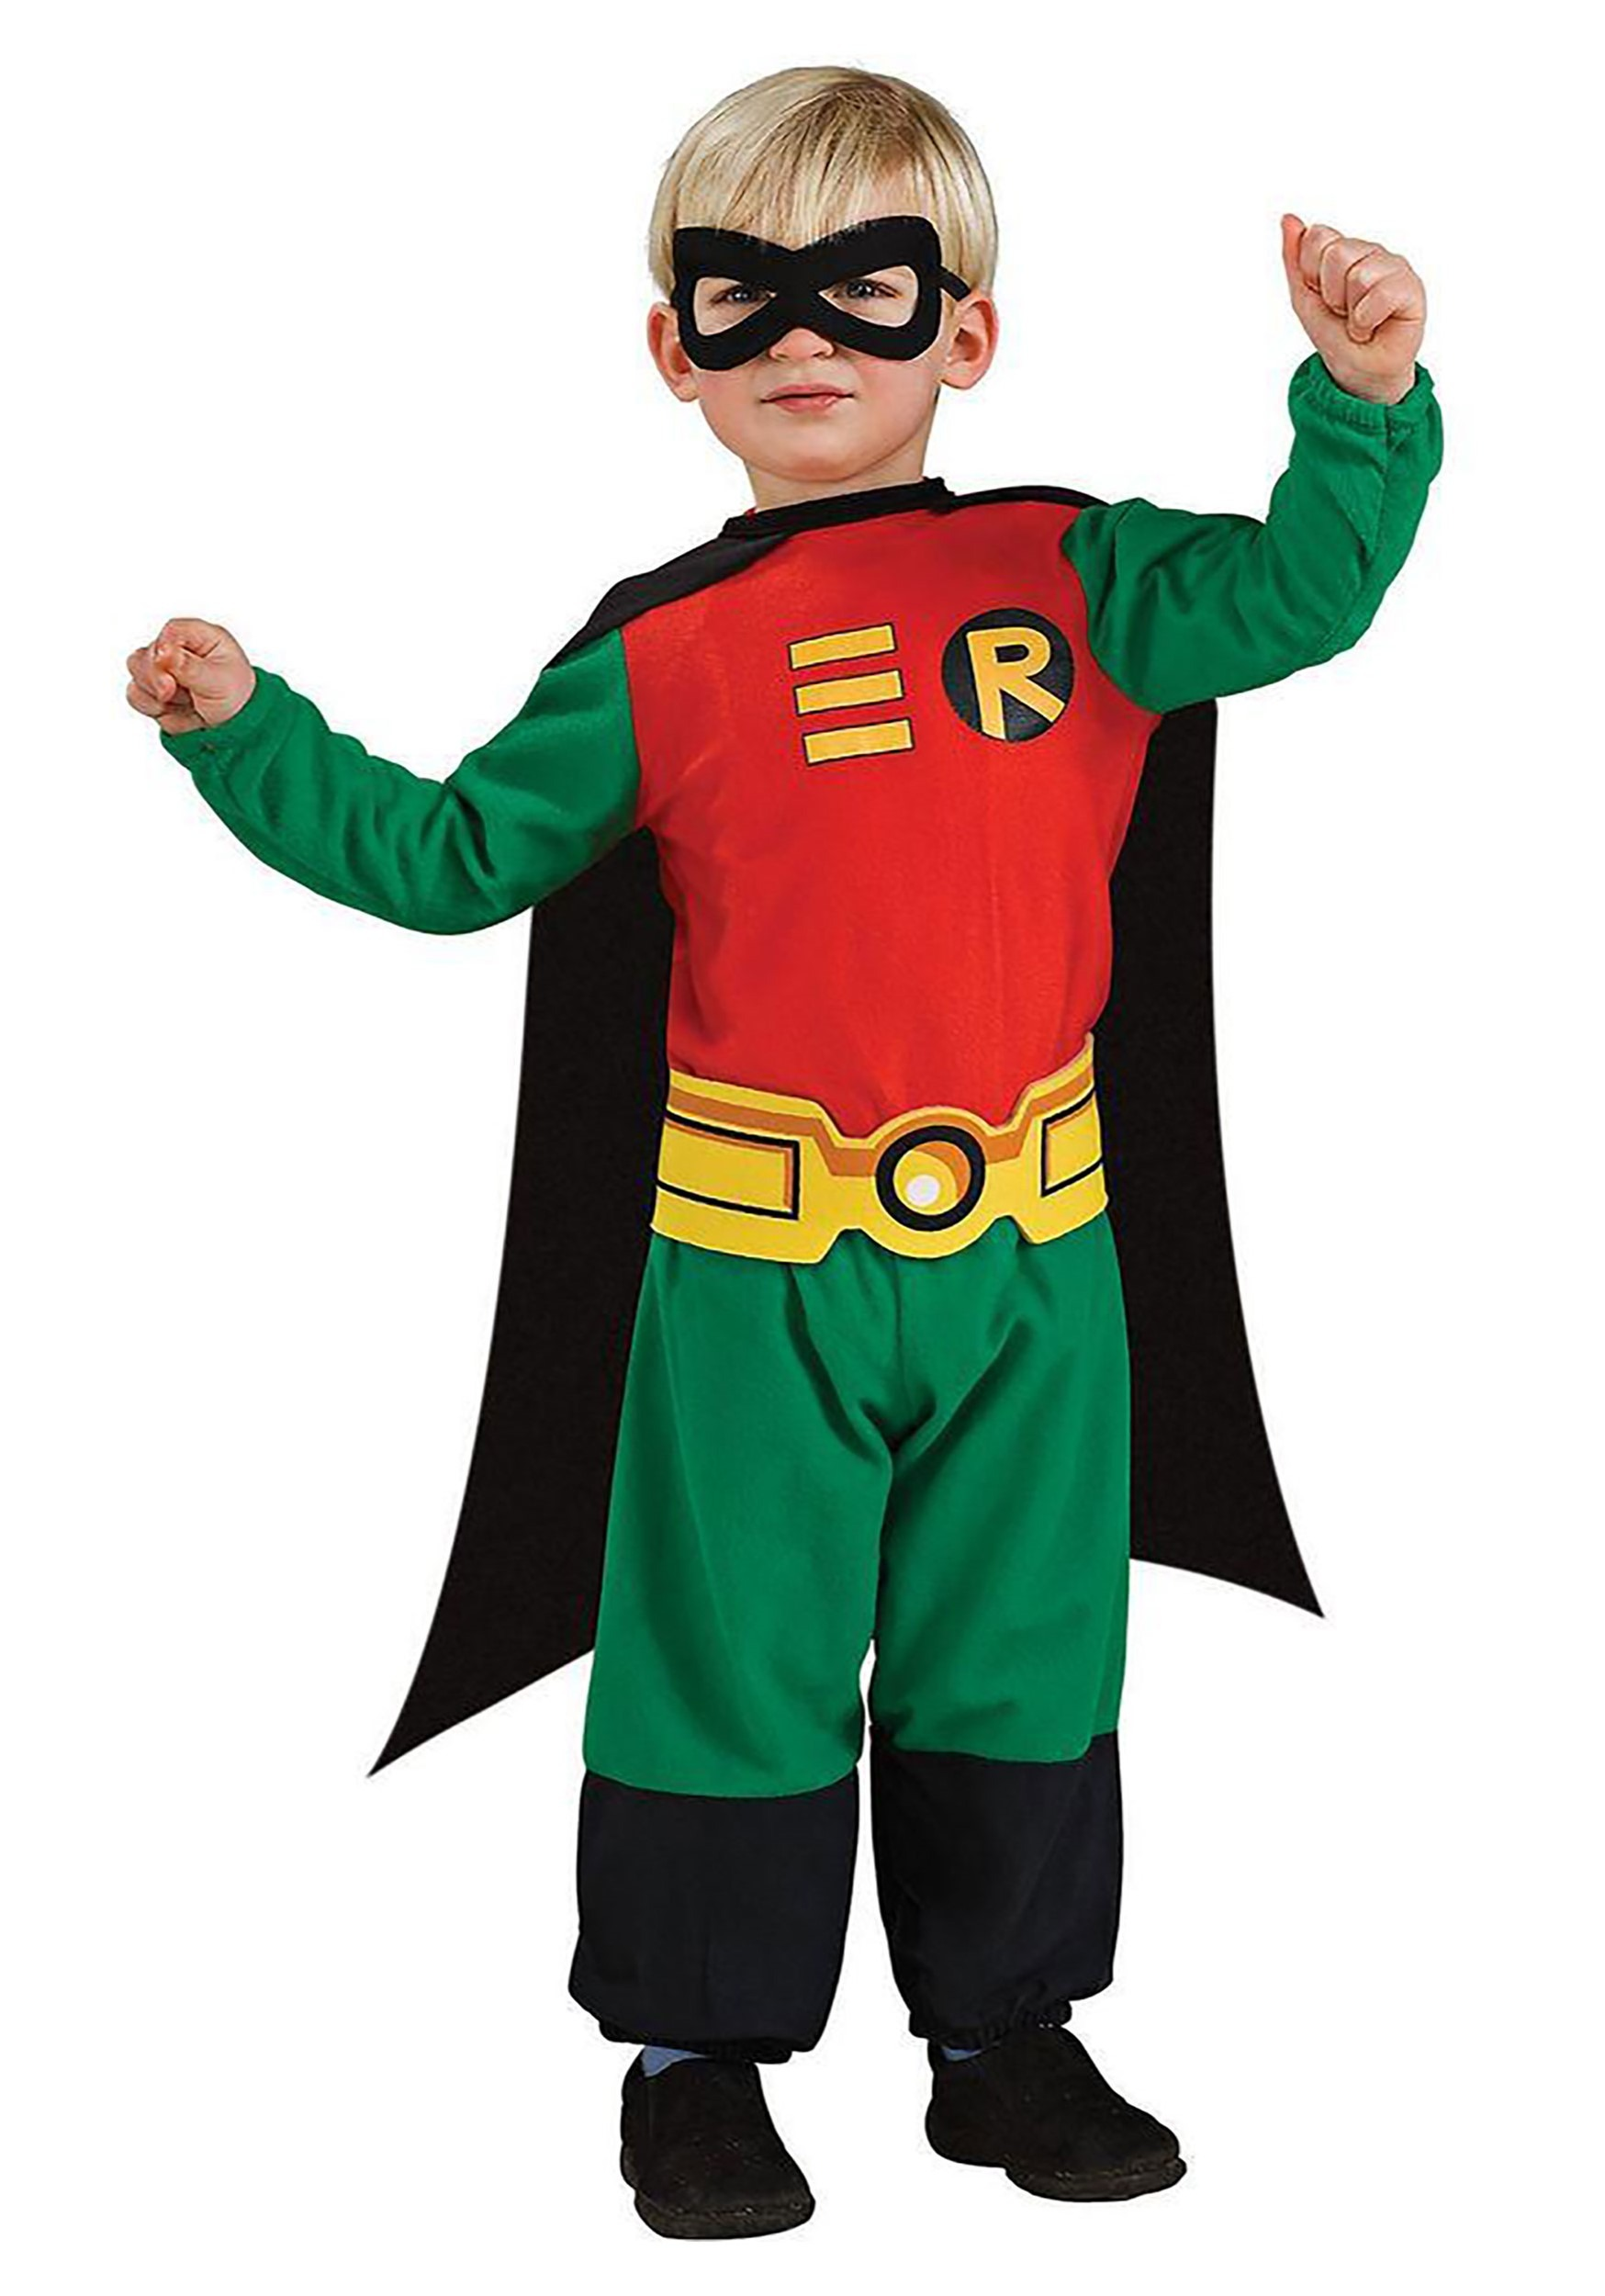 Costumes on Sale - Cheap Discount Halloween Costume